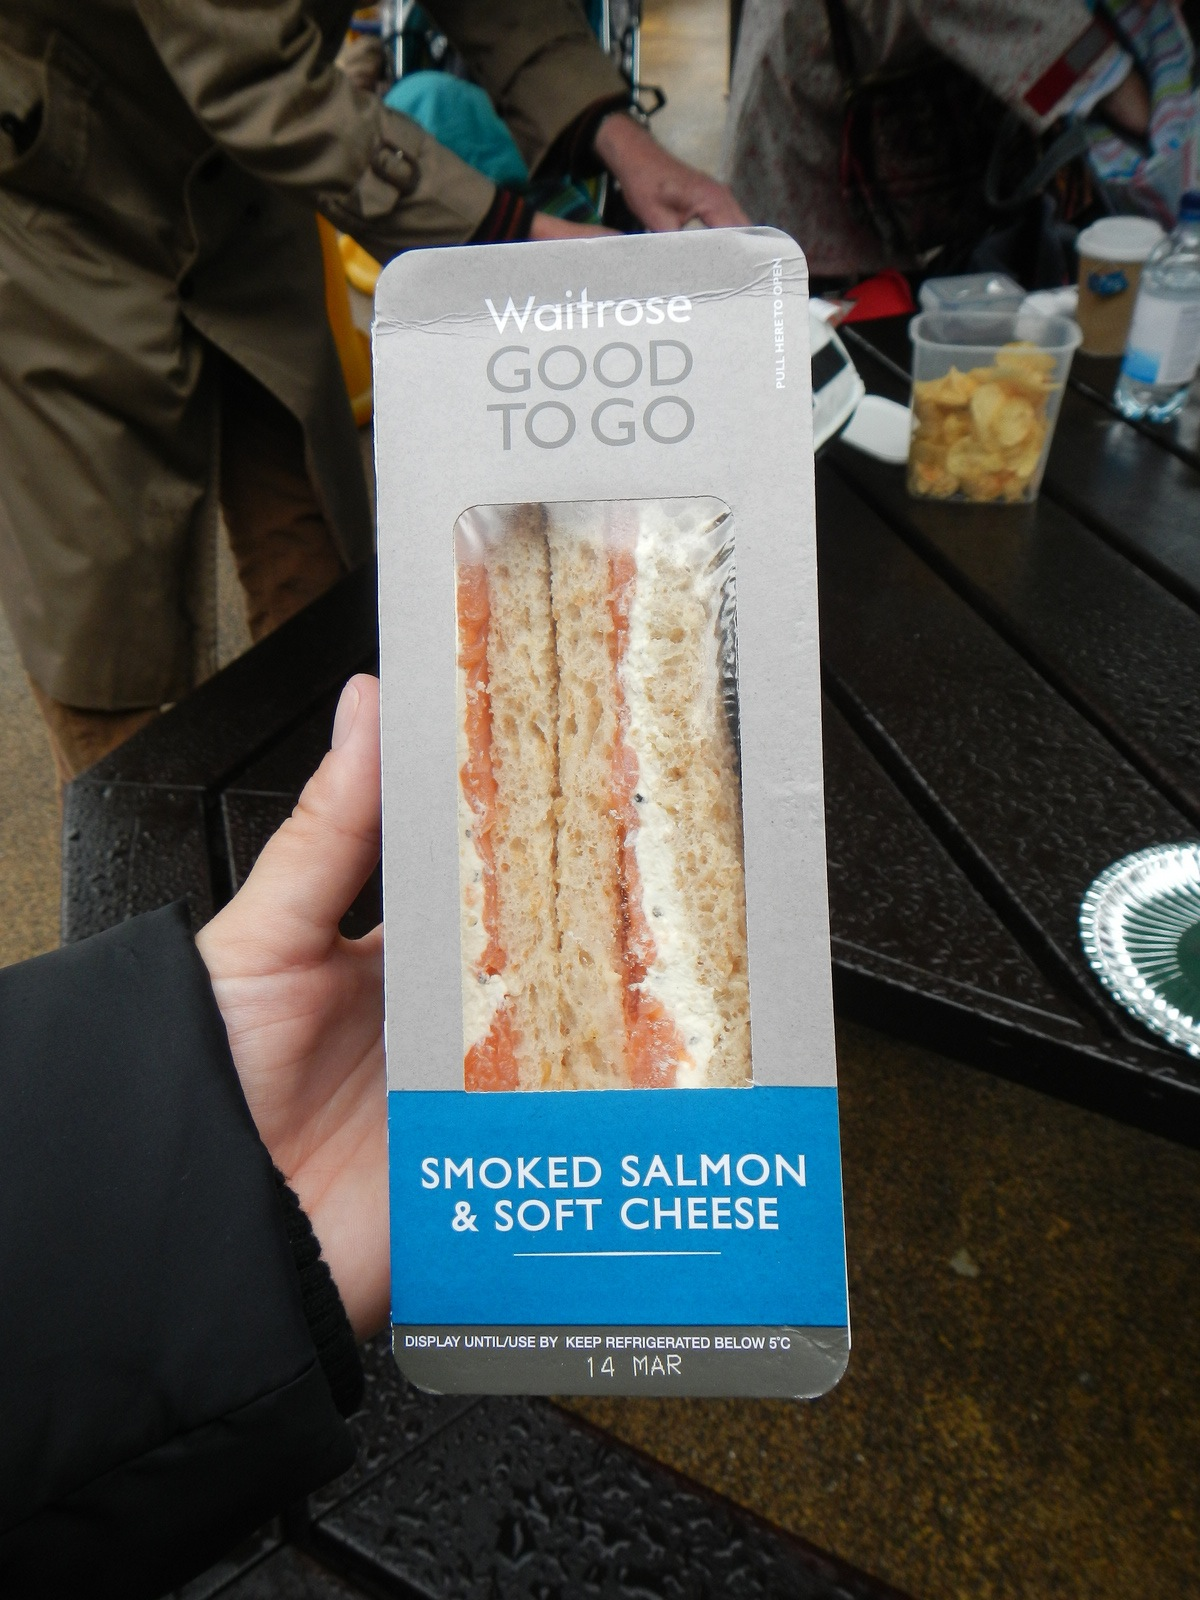 I wish we had Waitrose and their pre-made sandwiches in America.